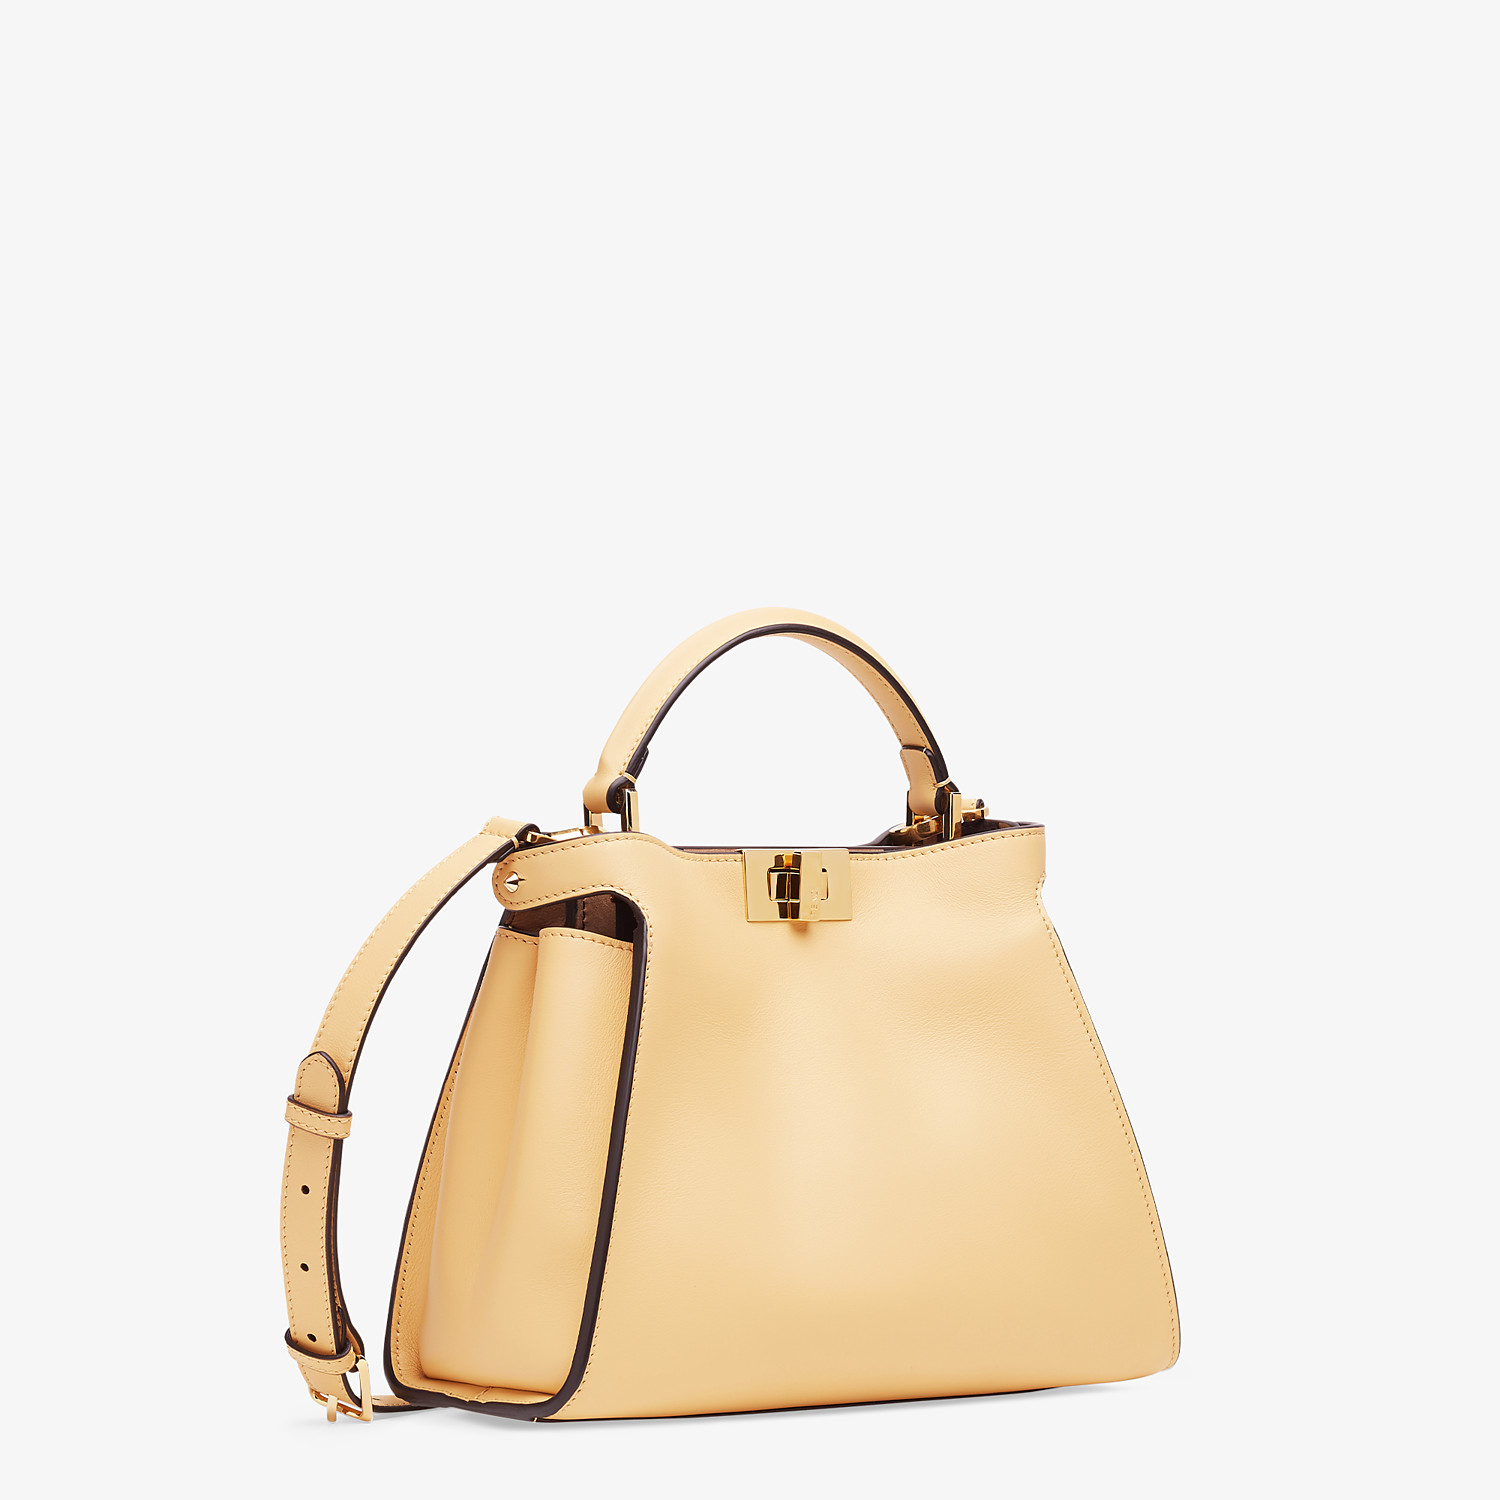 FENDI PEEKABOO ICONIC ESSENTIALLY - Yellow leather bag - view 2 detail